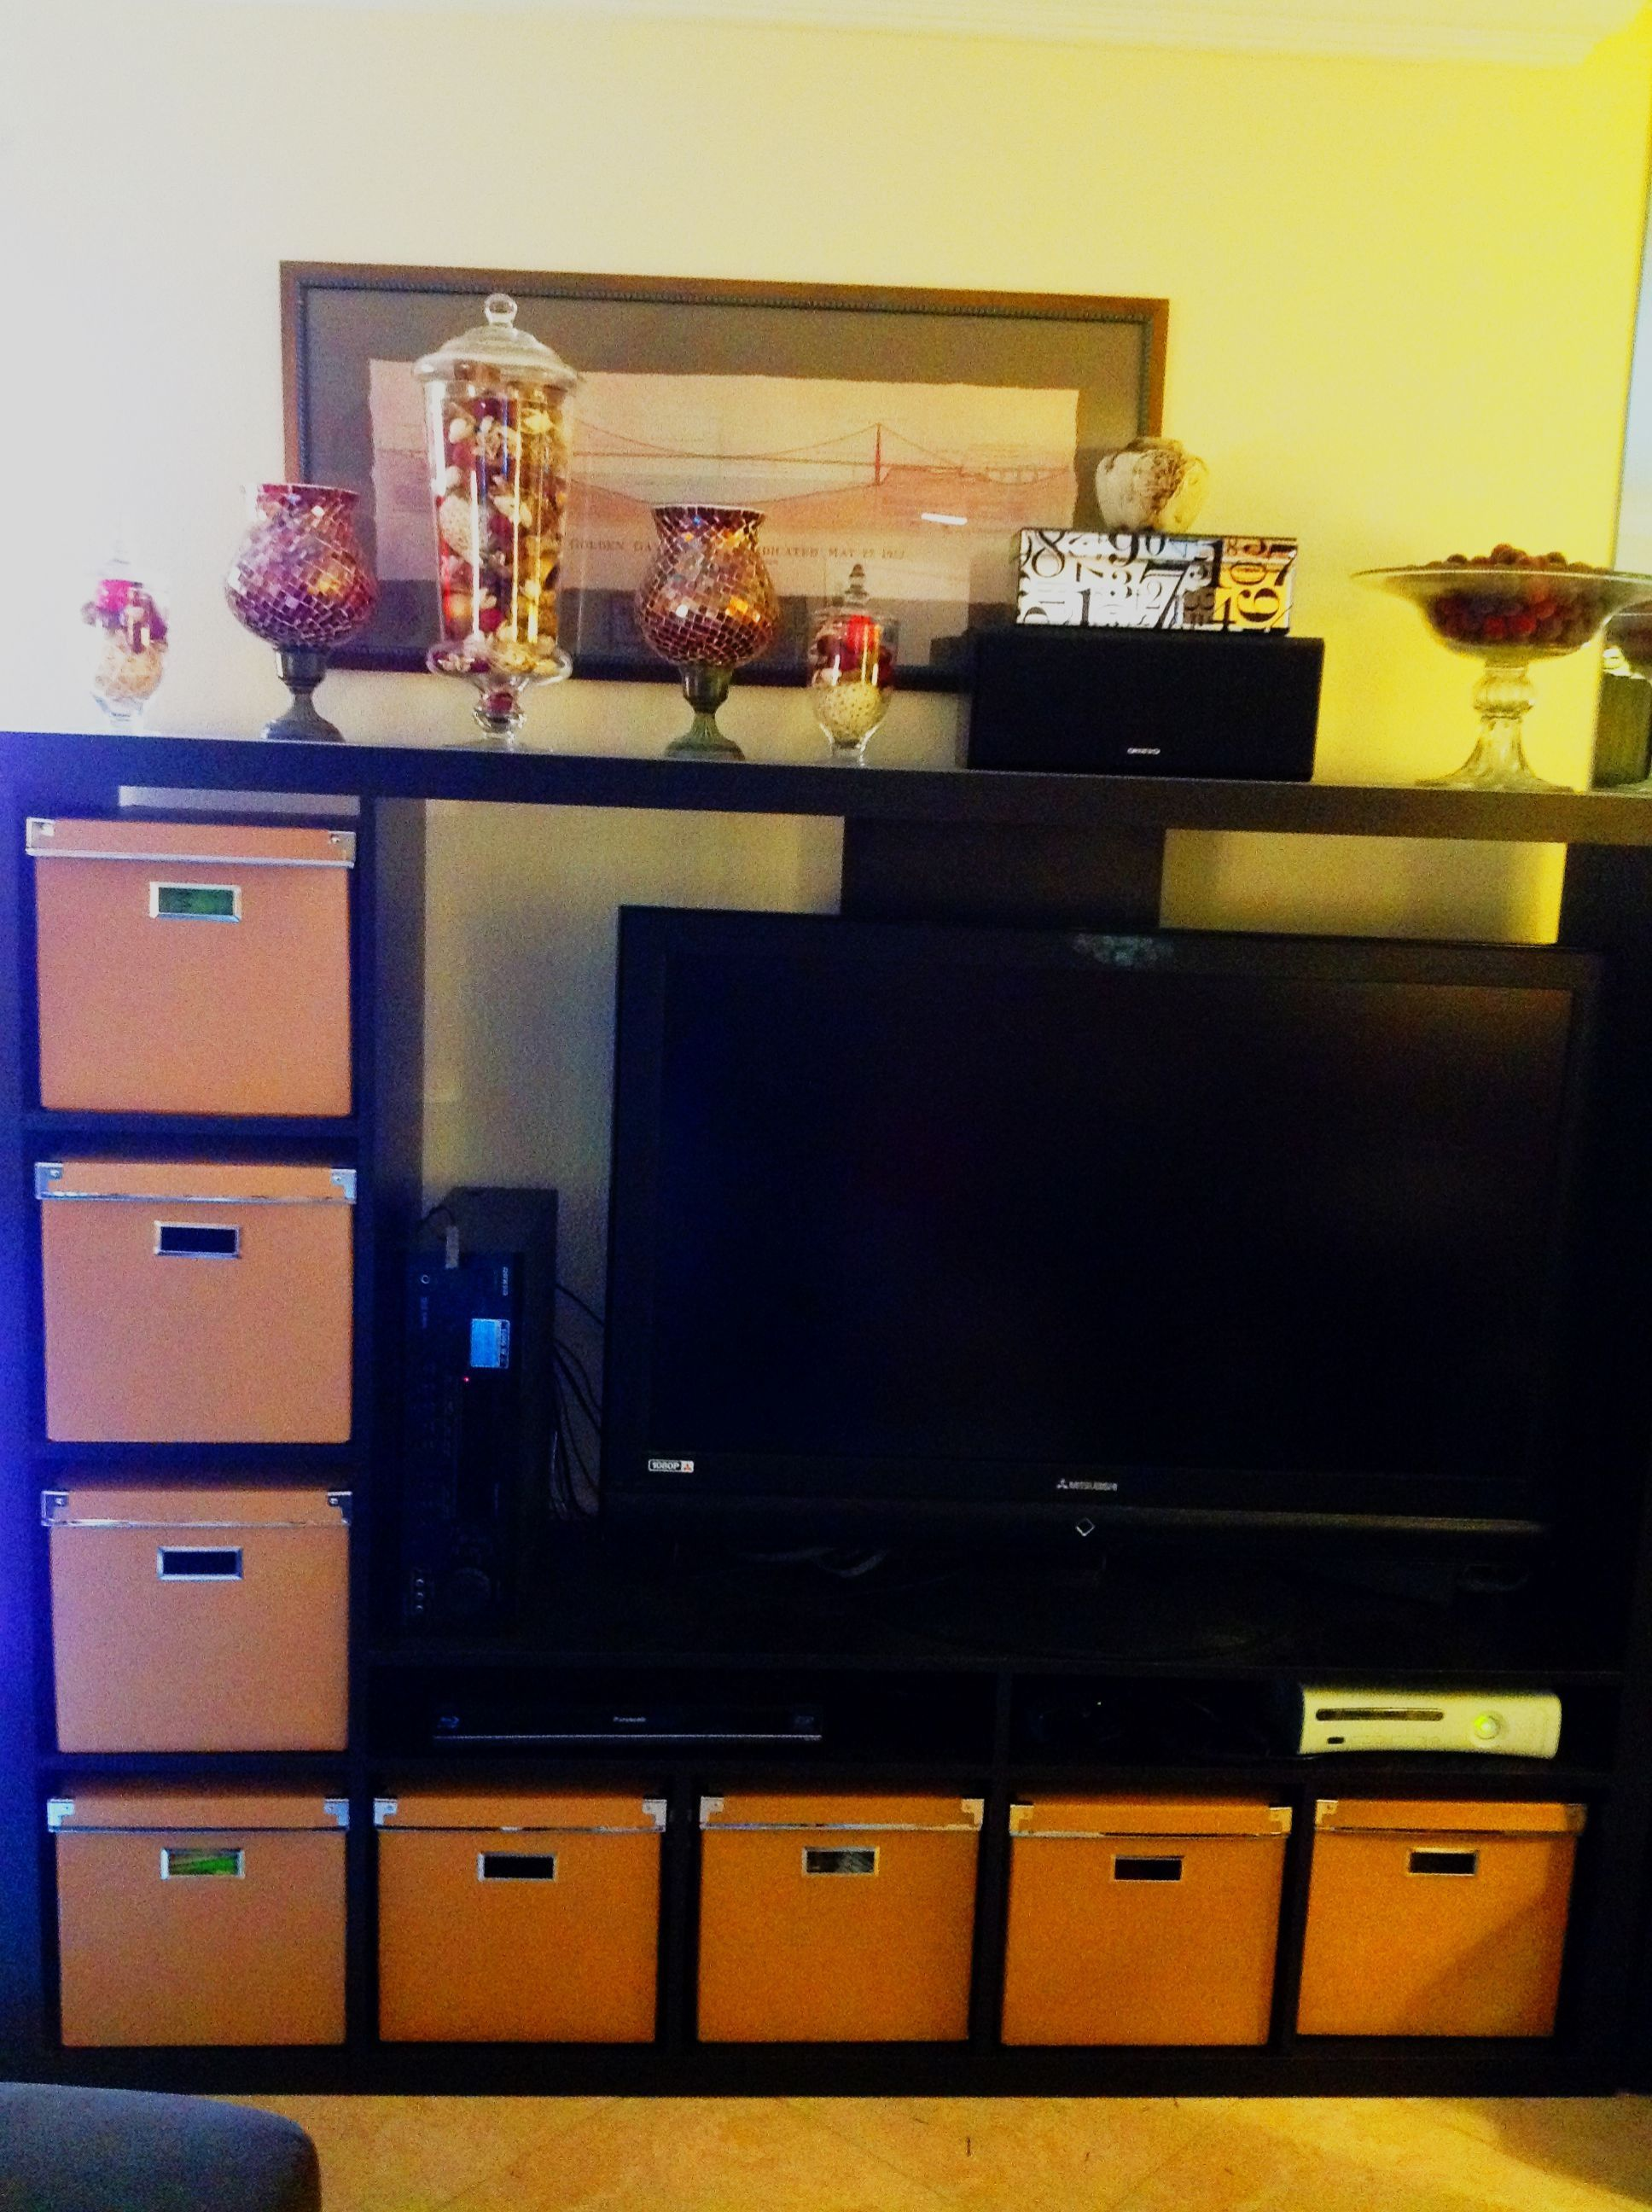 IKEA Expedit Entertainment Center With Bins For Hidden DVD/video Game  Storage And Apothecary Jar